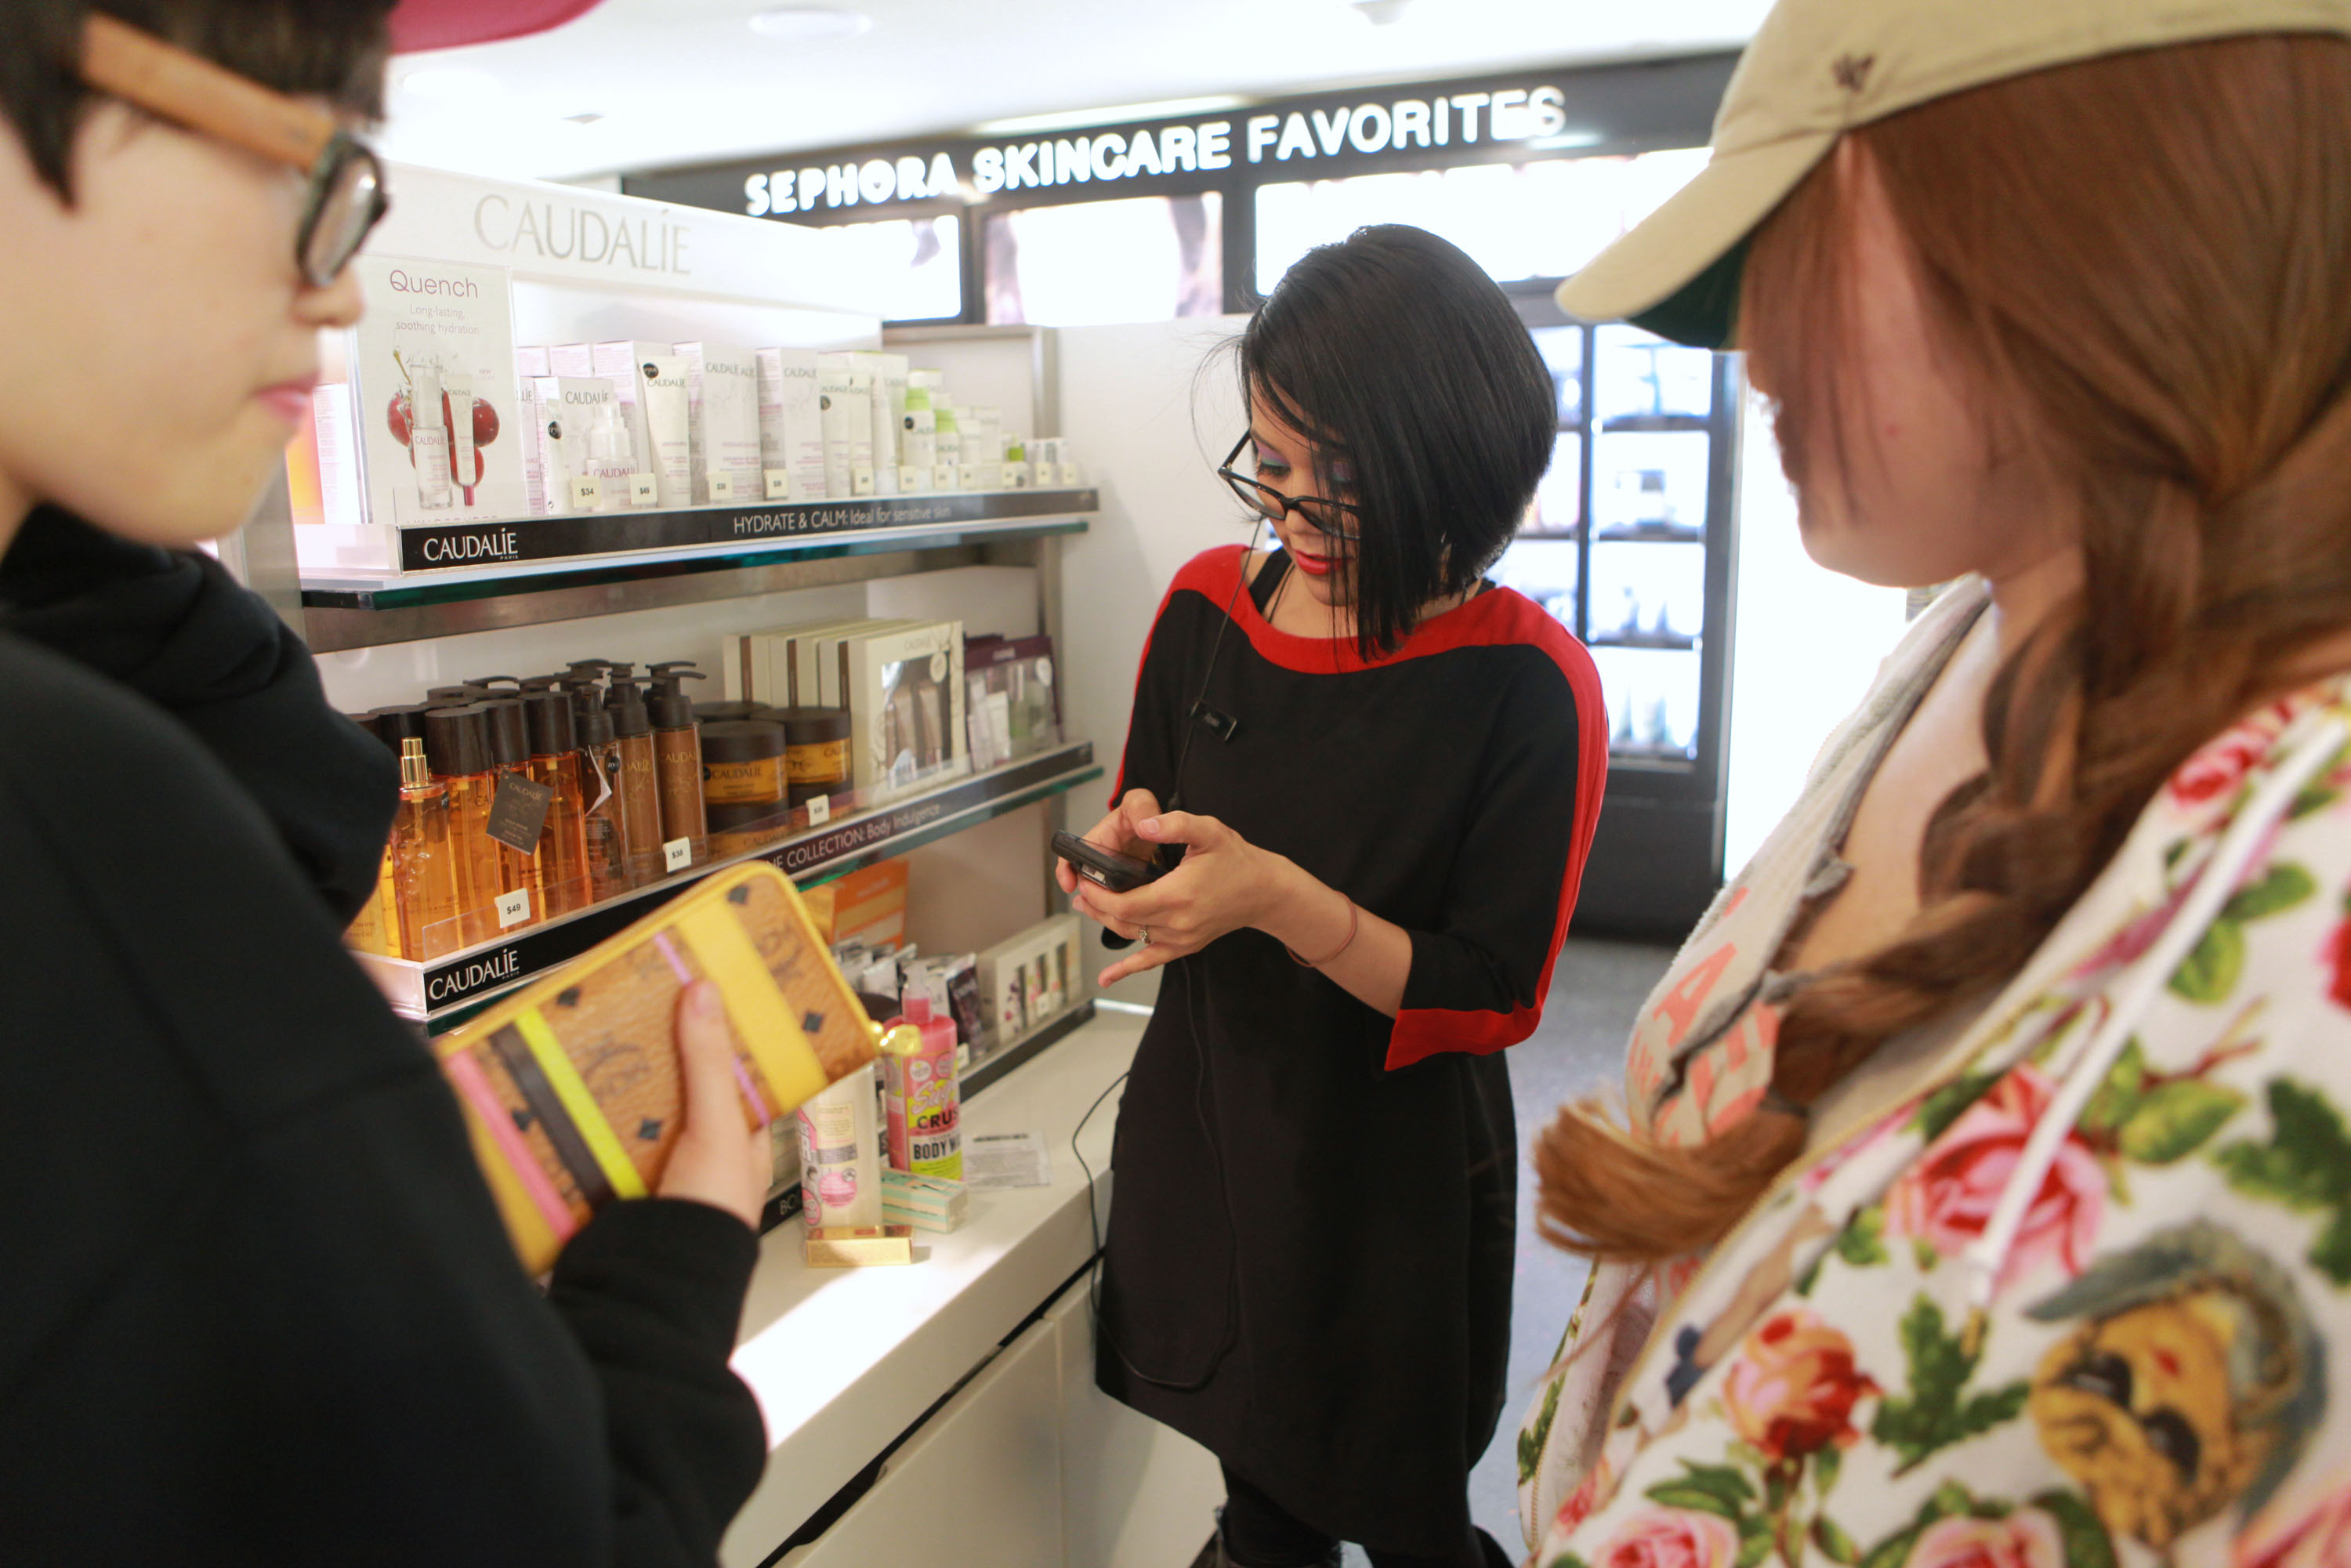 A Sephora employee assisting customers in a Sephora store.